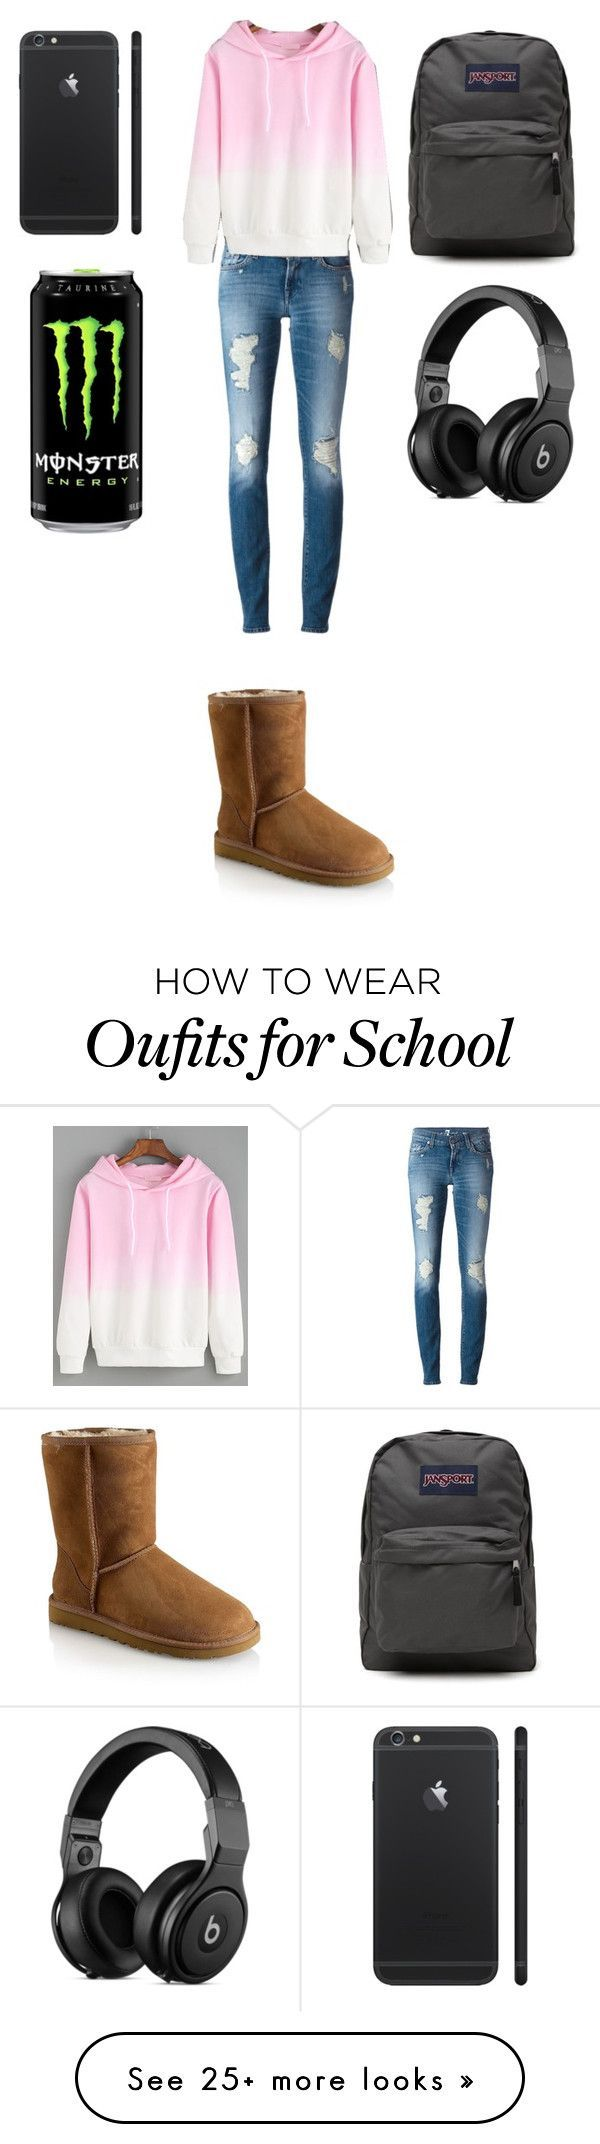 """School"" by sorry-im-me on Polyvore featuring UGG Australia, 7 For All Mankind and JanSport"